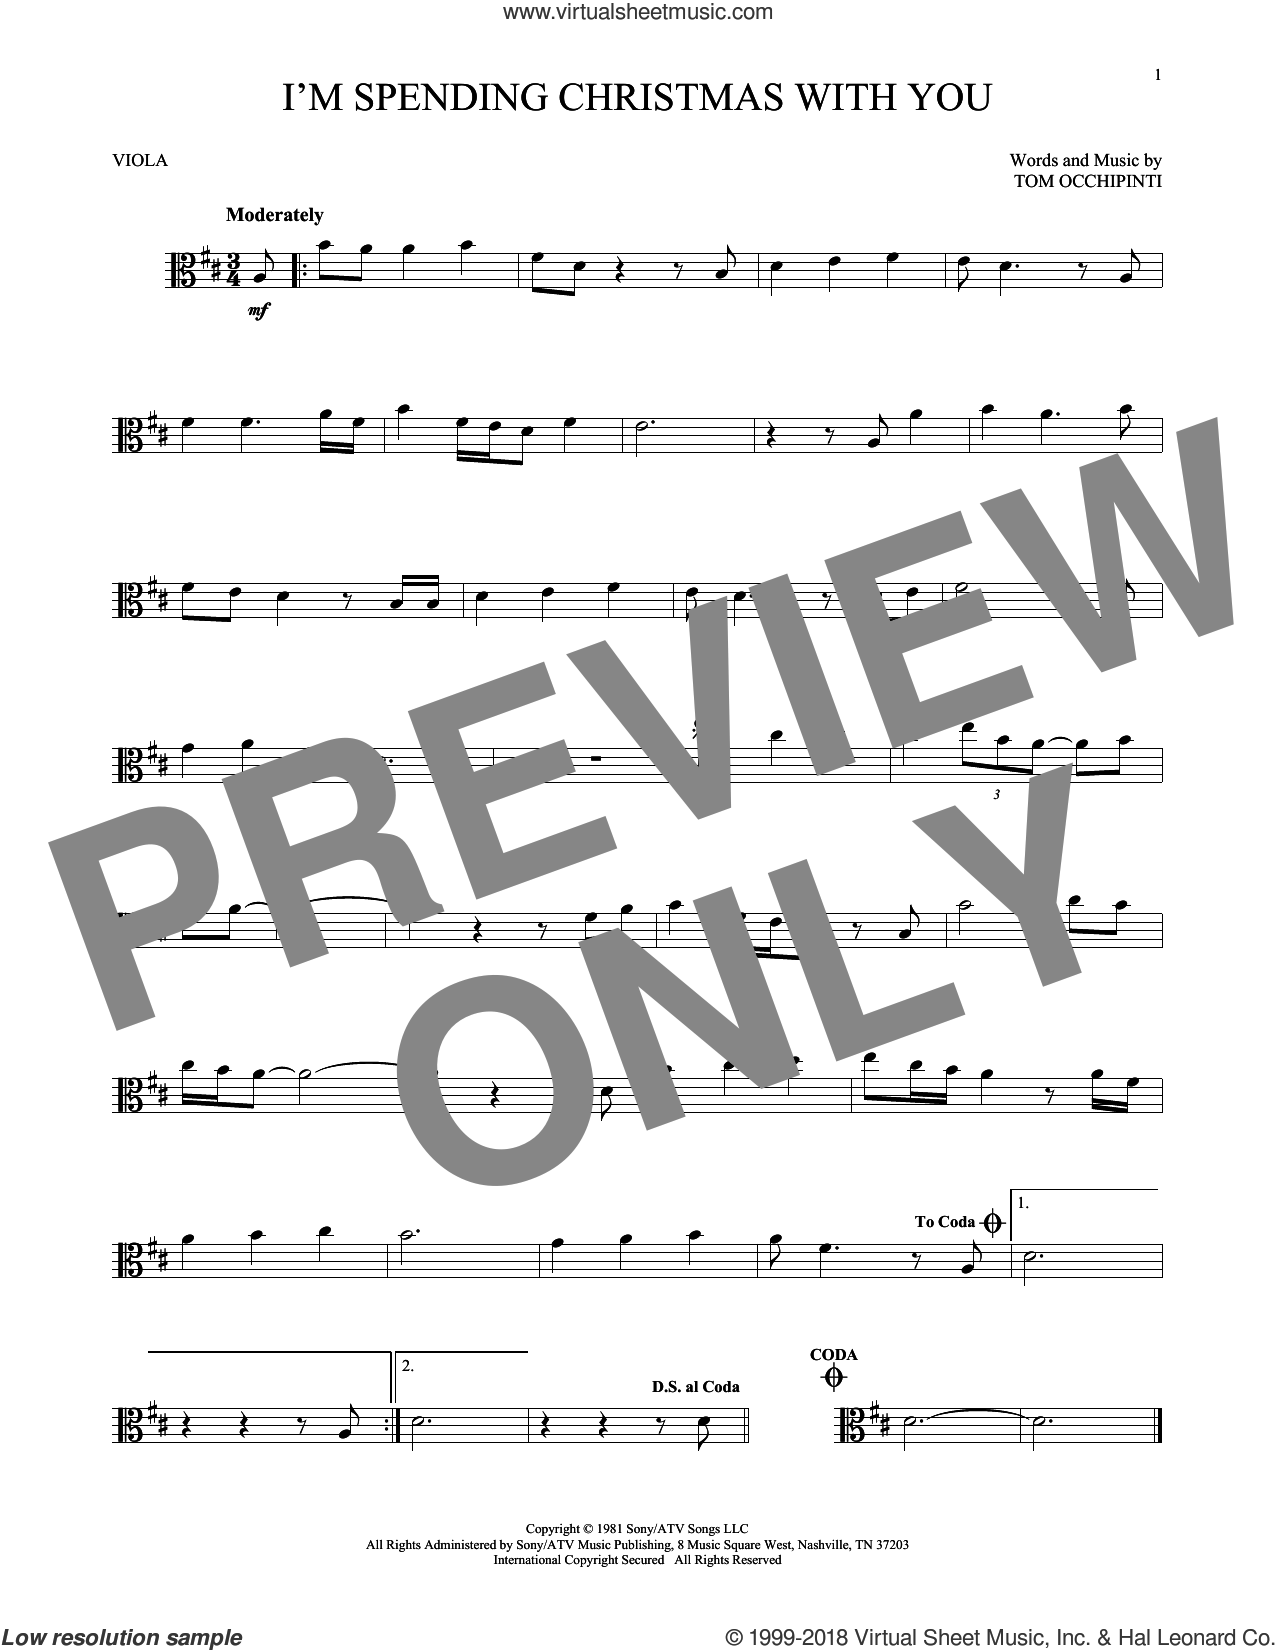 I'm Spending Christmas With You sheet music for viola solo by Tom Occhipinti, intermediate skill level